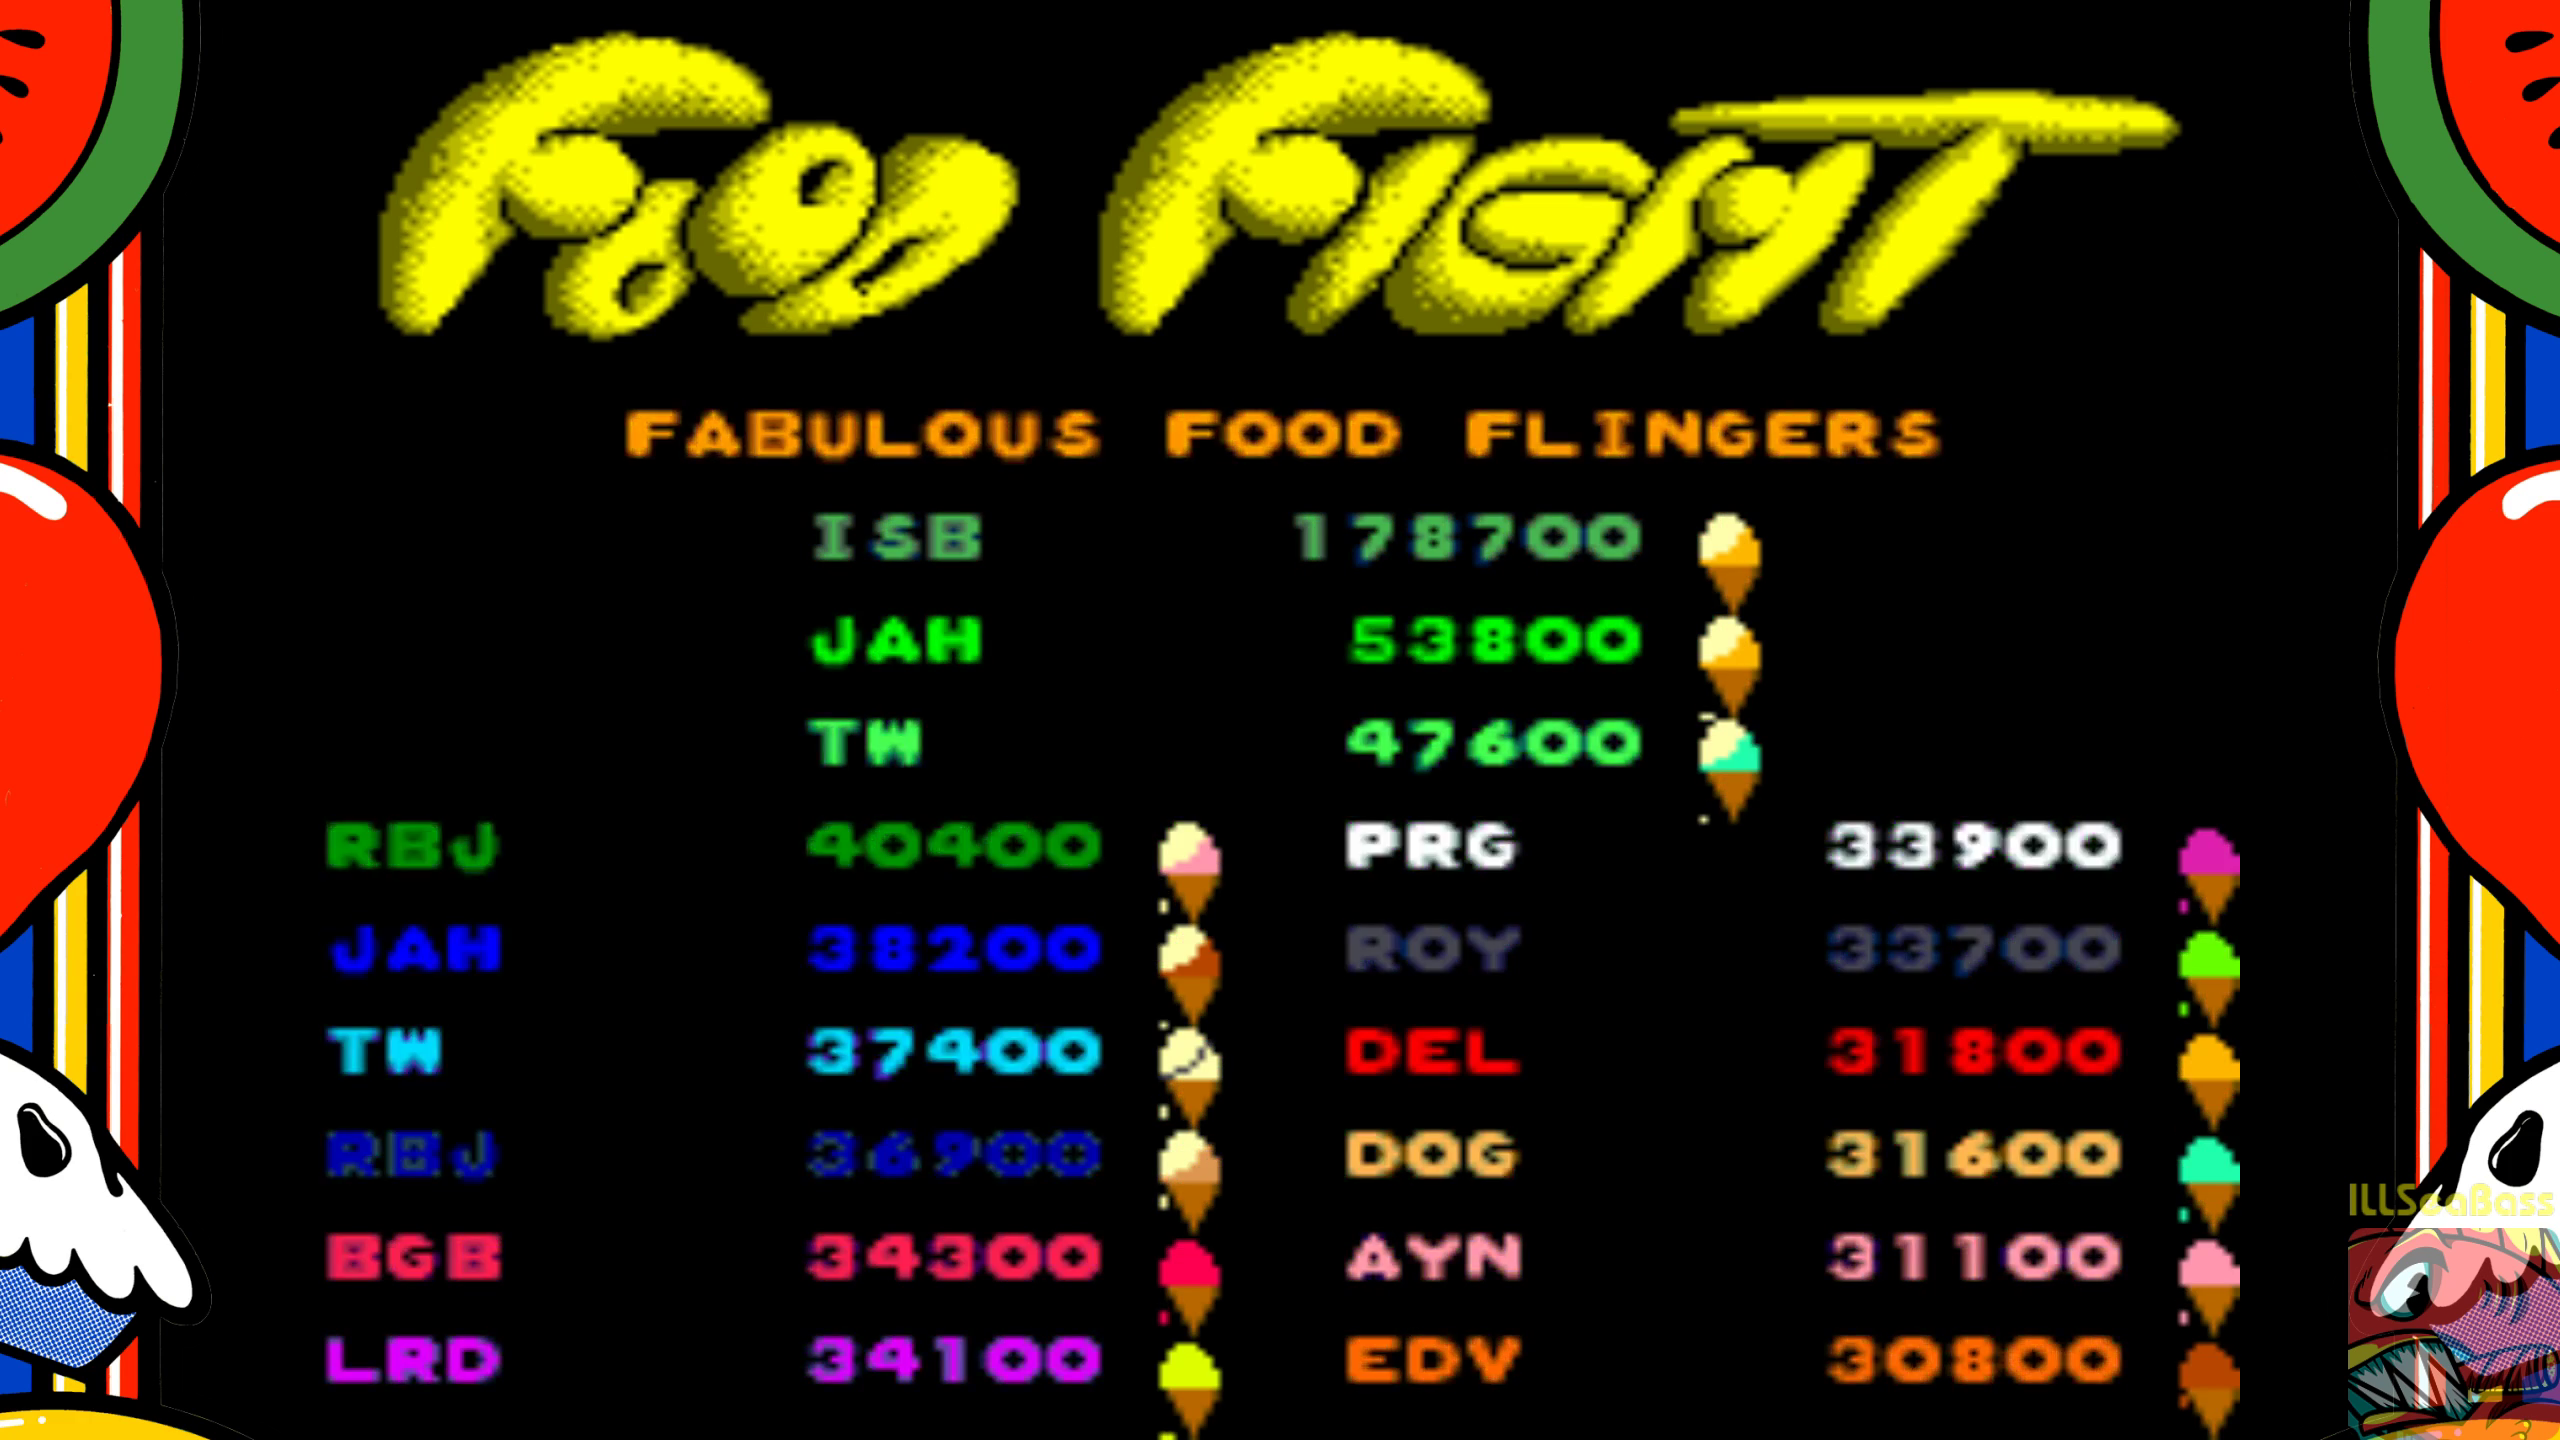 Food Fight 178,700 points